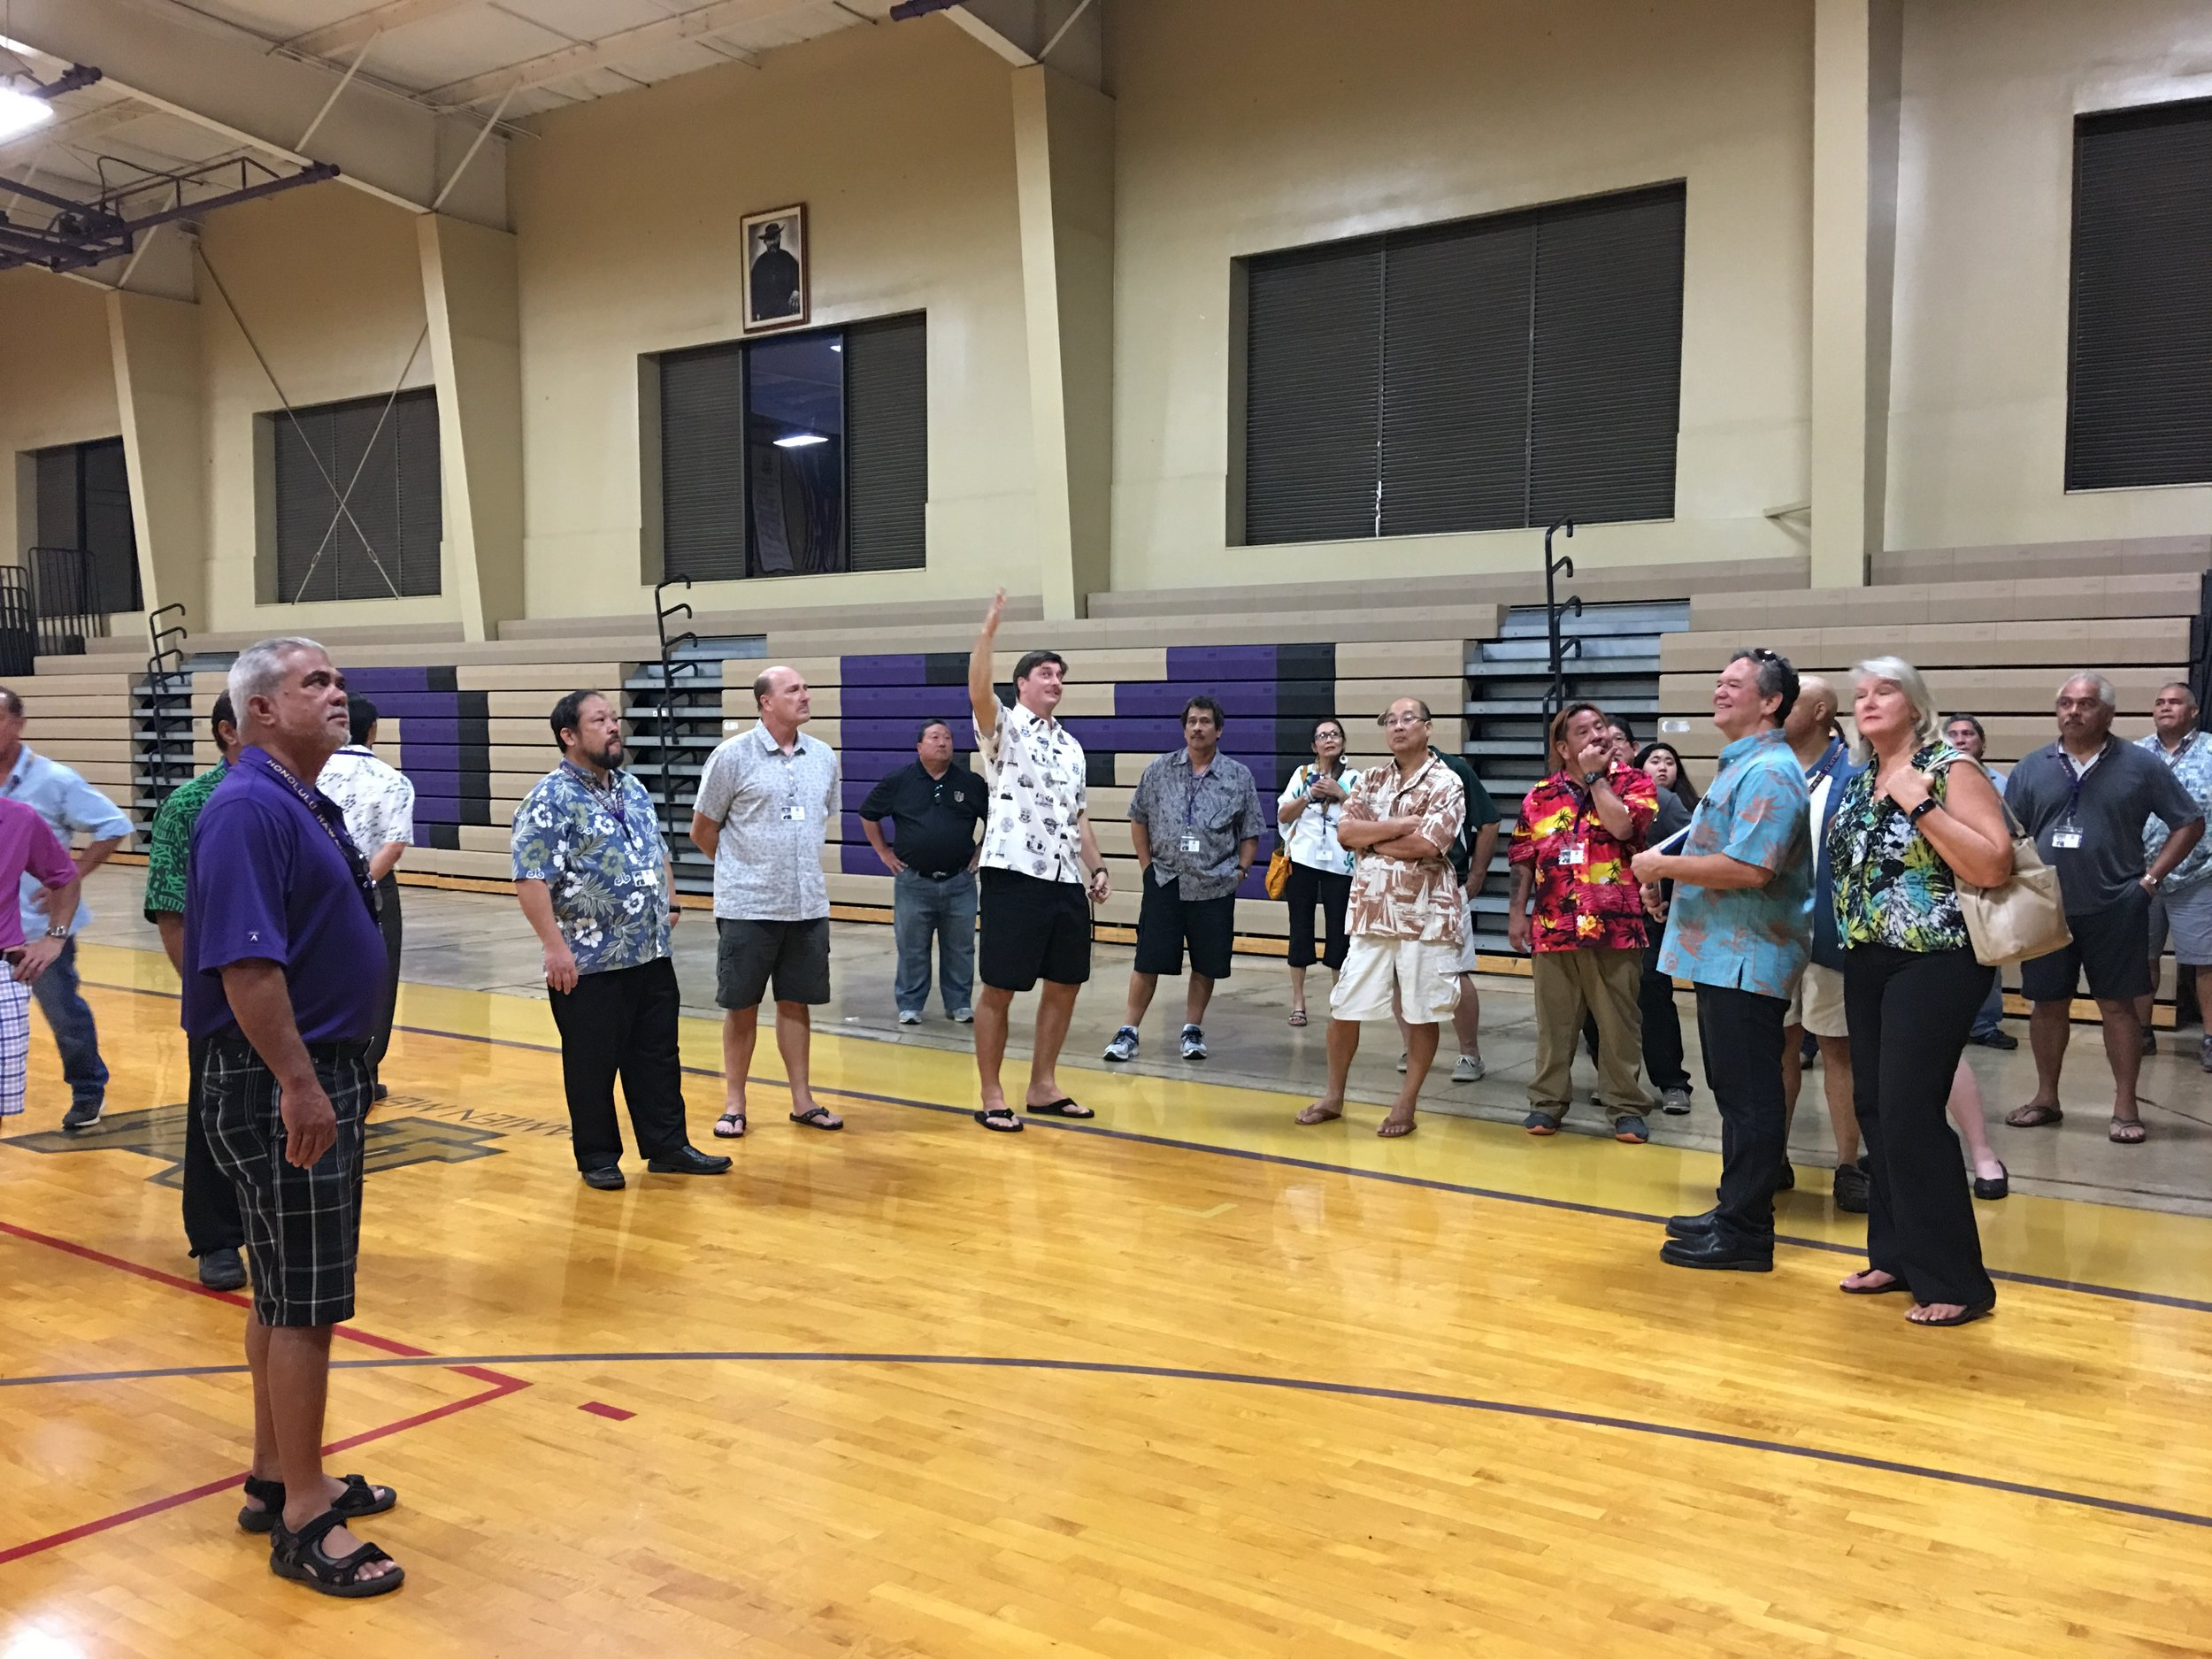 Wes Porter with Class of 1976 in our School Gymnasium.